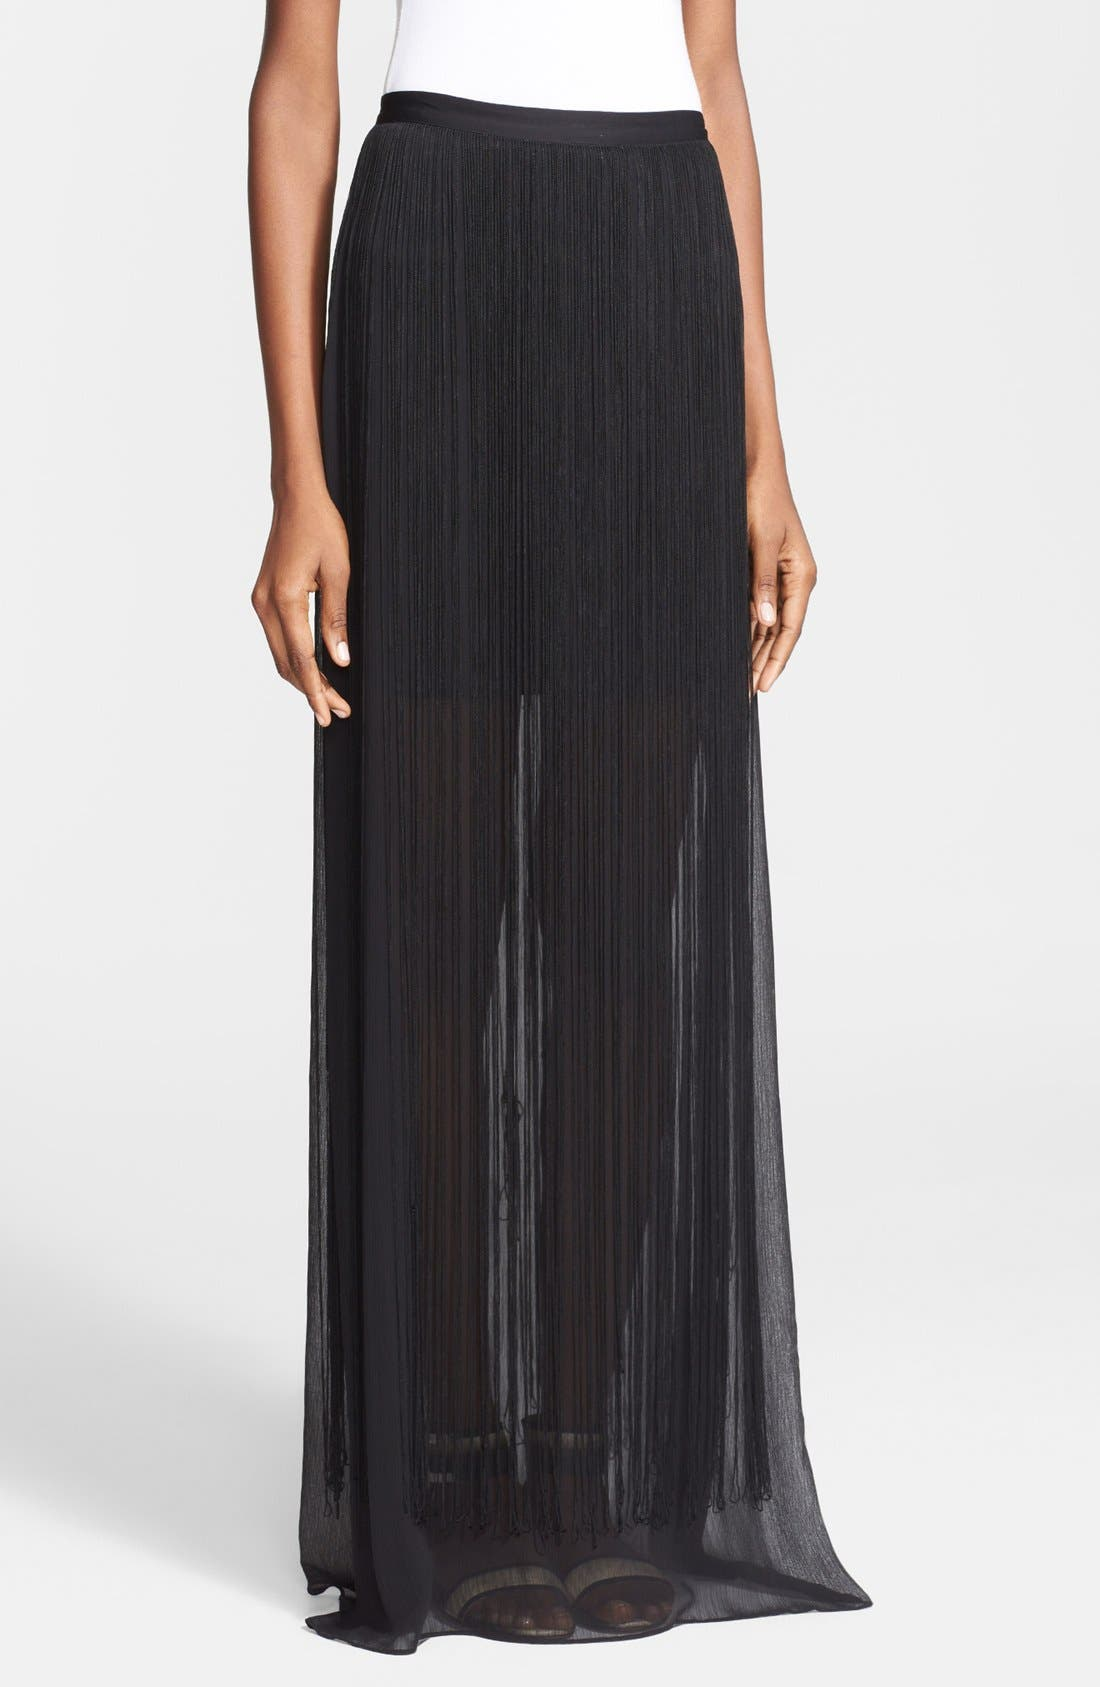 Alternate Image 1 Selected - Alice + Olivia 'Caitlin' Fringe Chiffon Maxi Skirt